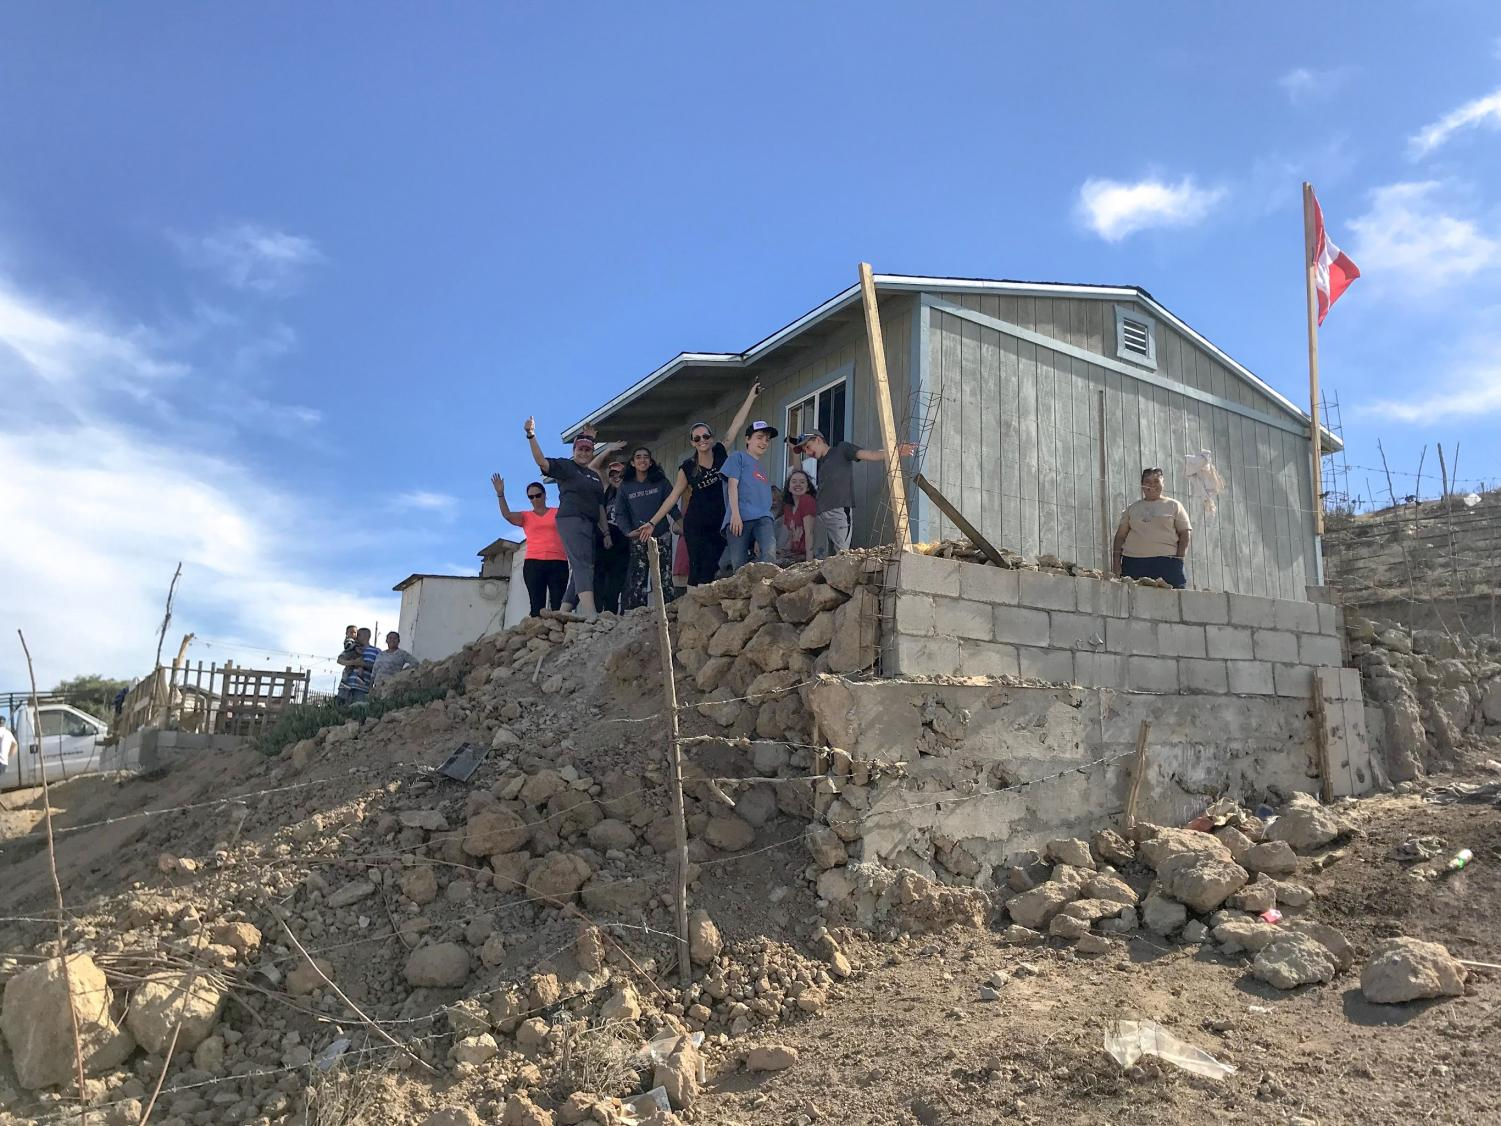 Mallik and her entire team stand and wave joyfully in front of the completed house on the final day of their trip in Enseñada, Mexico